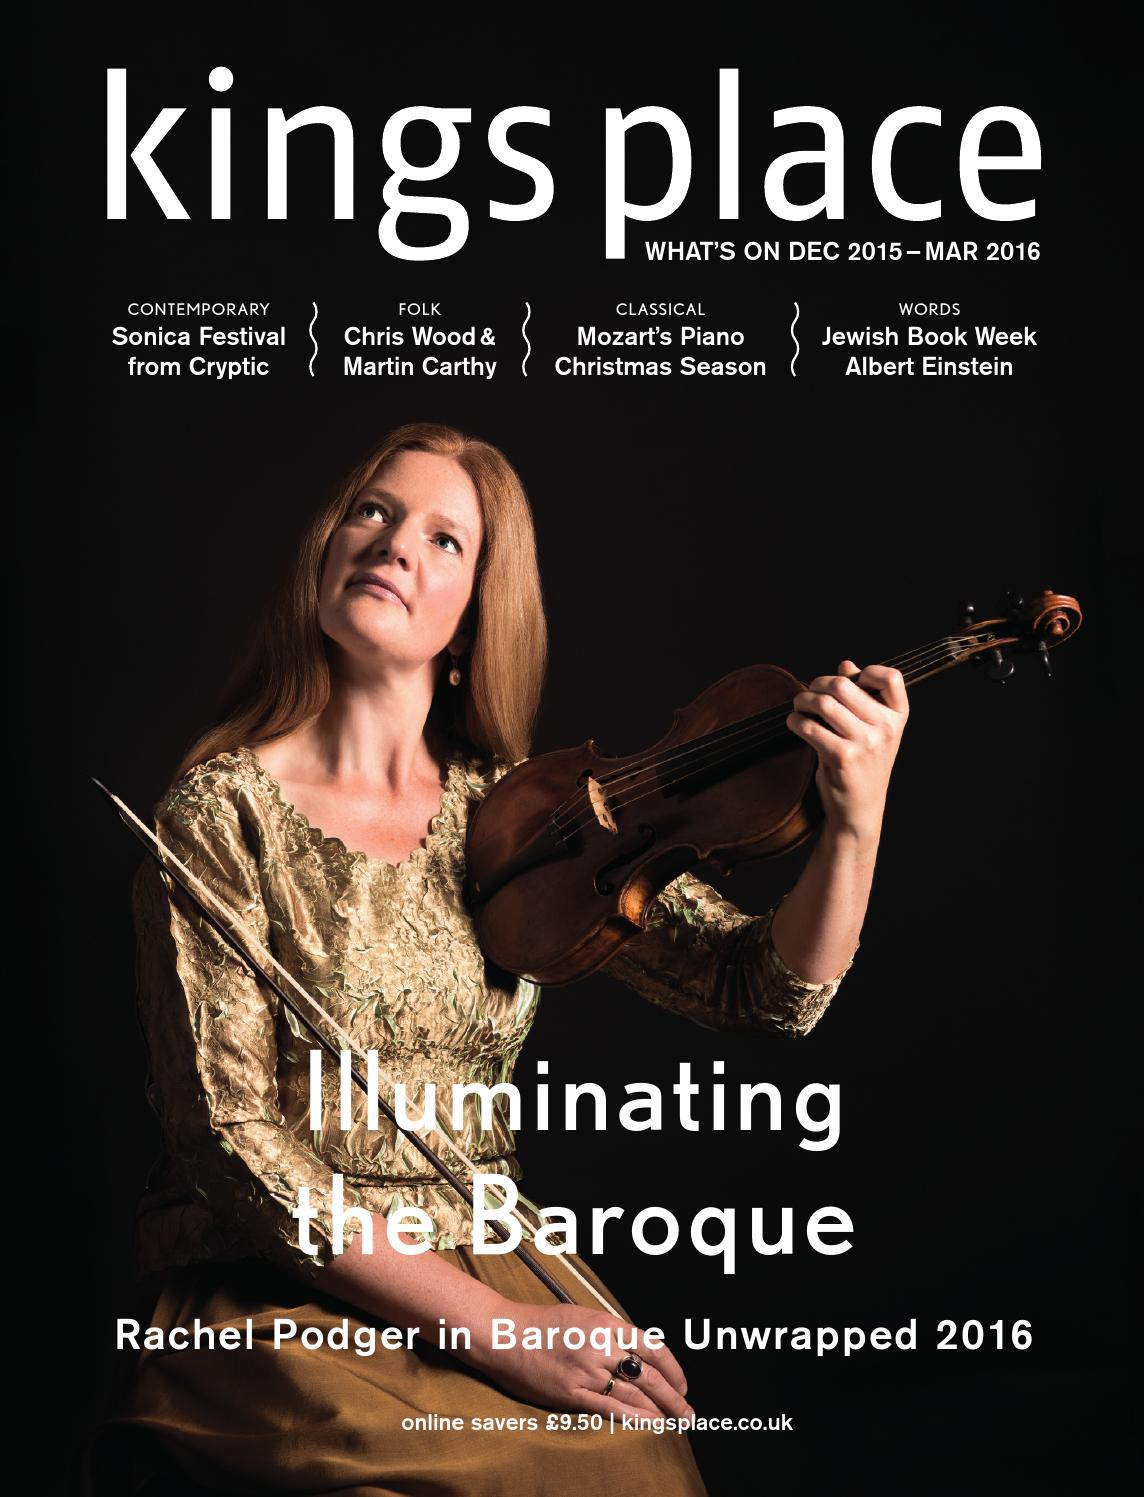 Kings place whats on december 2015 to march 2016 by kings place kings place whats on december 2015 to march 2016 by kings place issuu stopboris Gallery